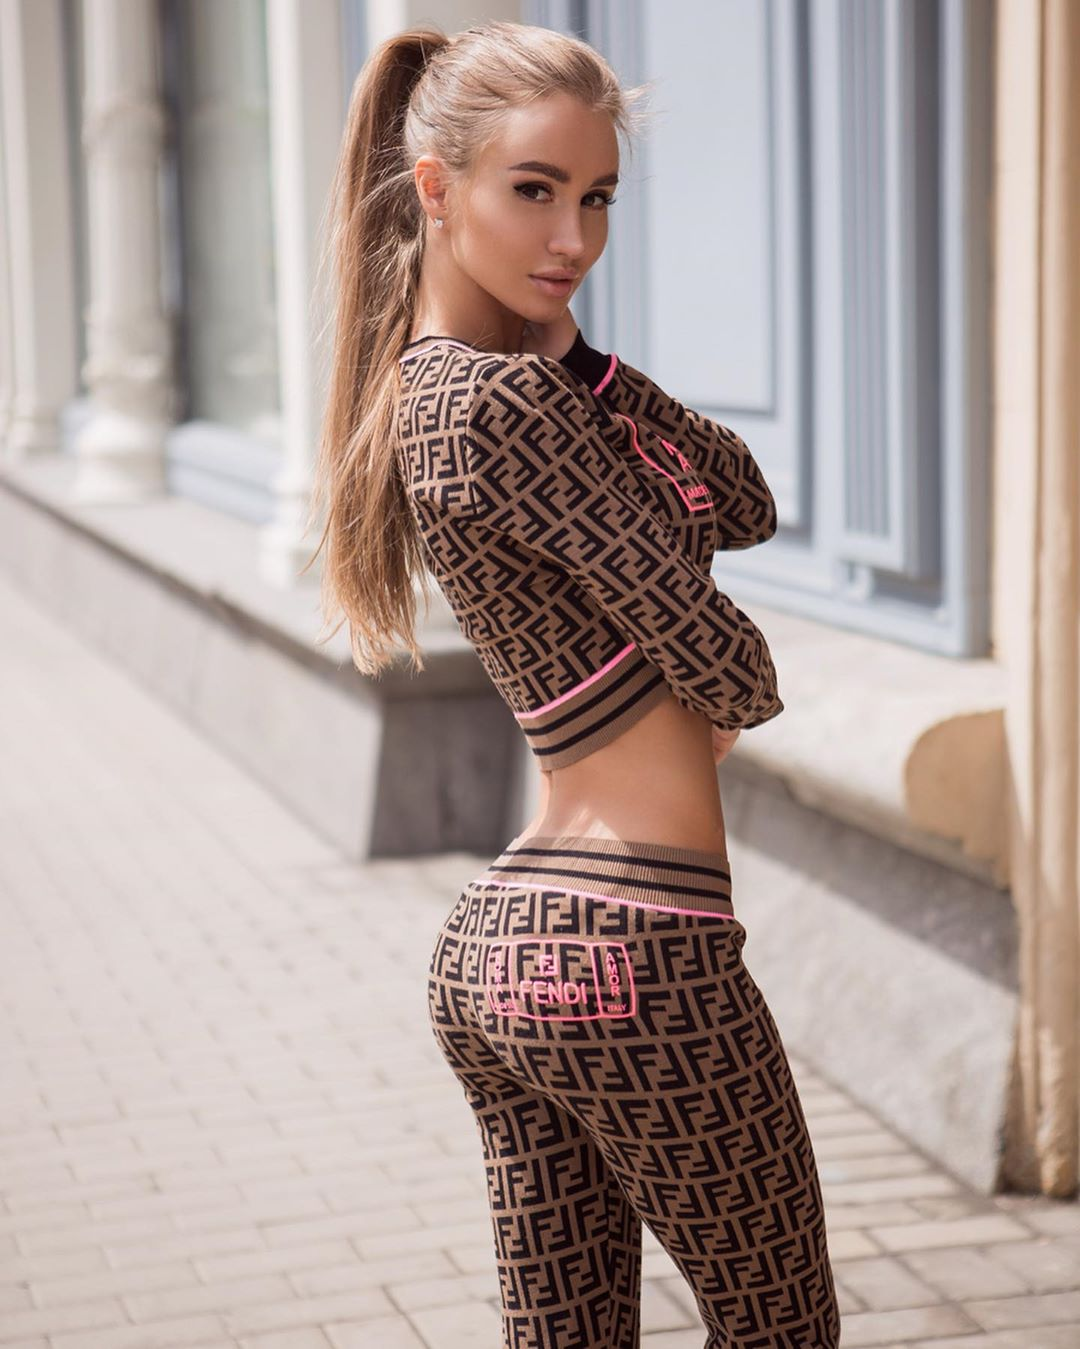 Valenti-Vitel-Wallpapers-Insta-Fit-Bio-1